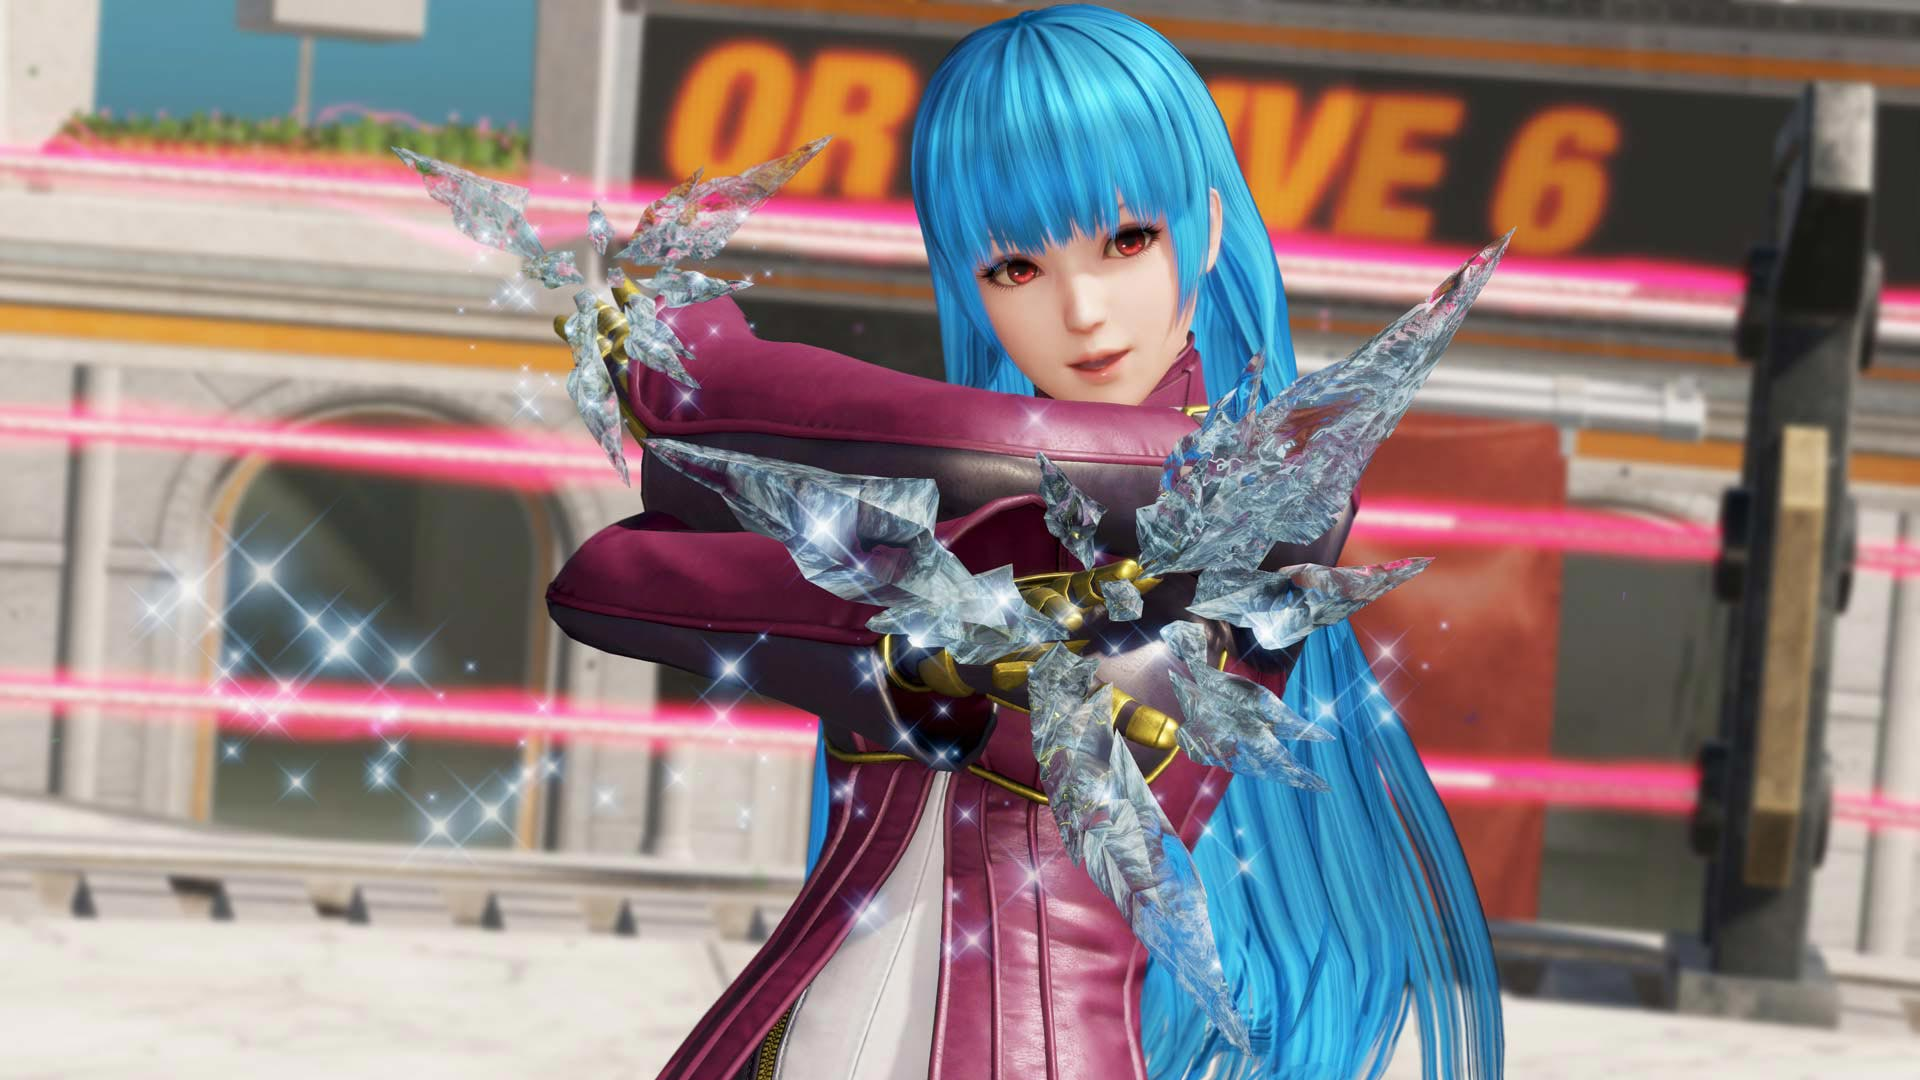 Kula and Mai in DOA6 1.06 2 out of 7 image gallery